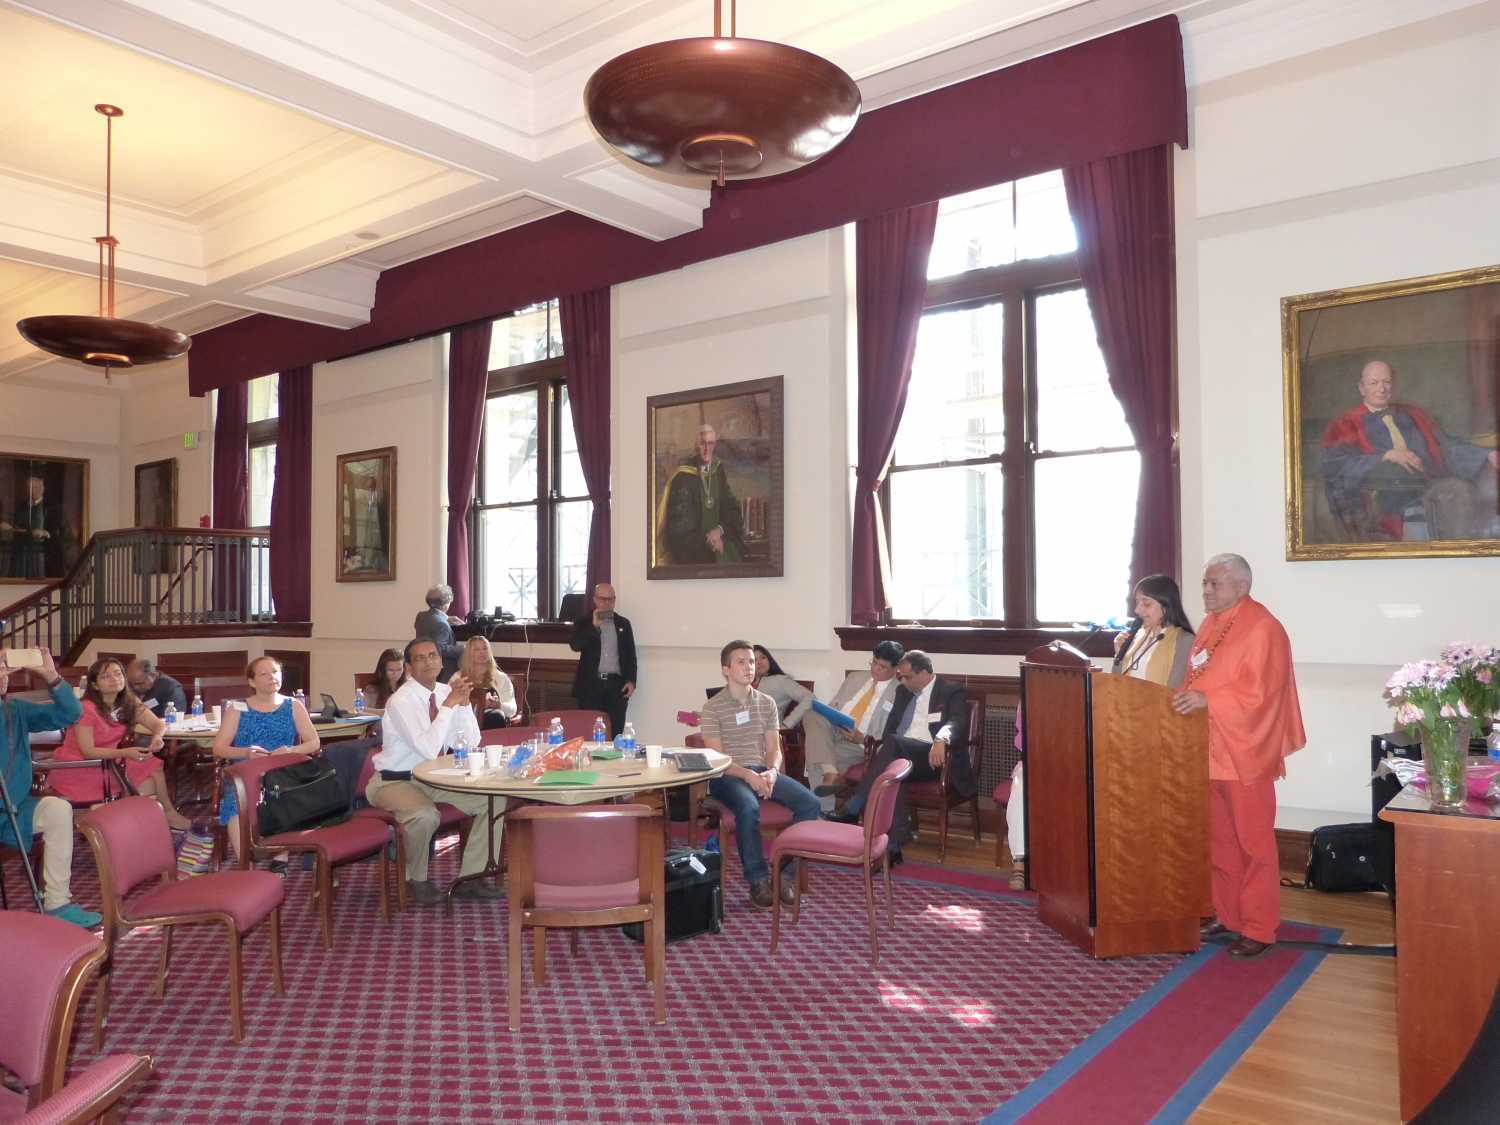 Symposia on Integrative Medicine and Role of Yoga and Ayurveda - Harvard University, Boston, USA - 2016, June